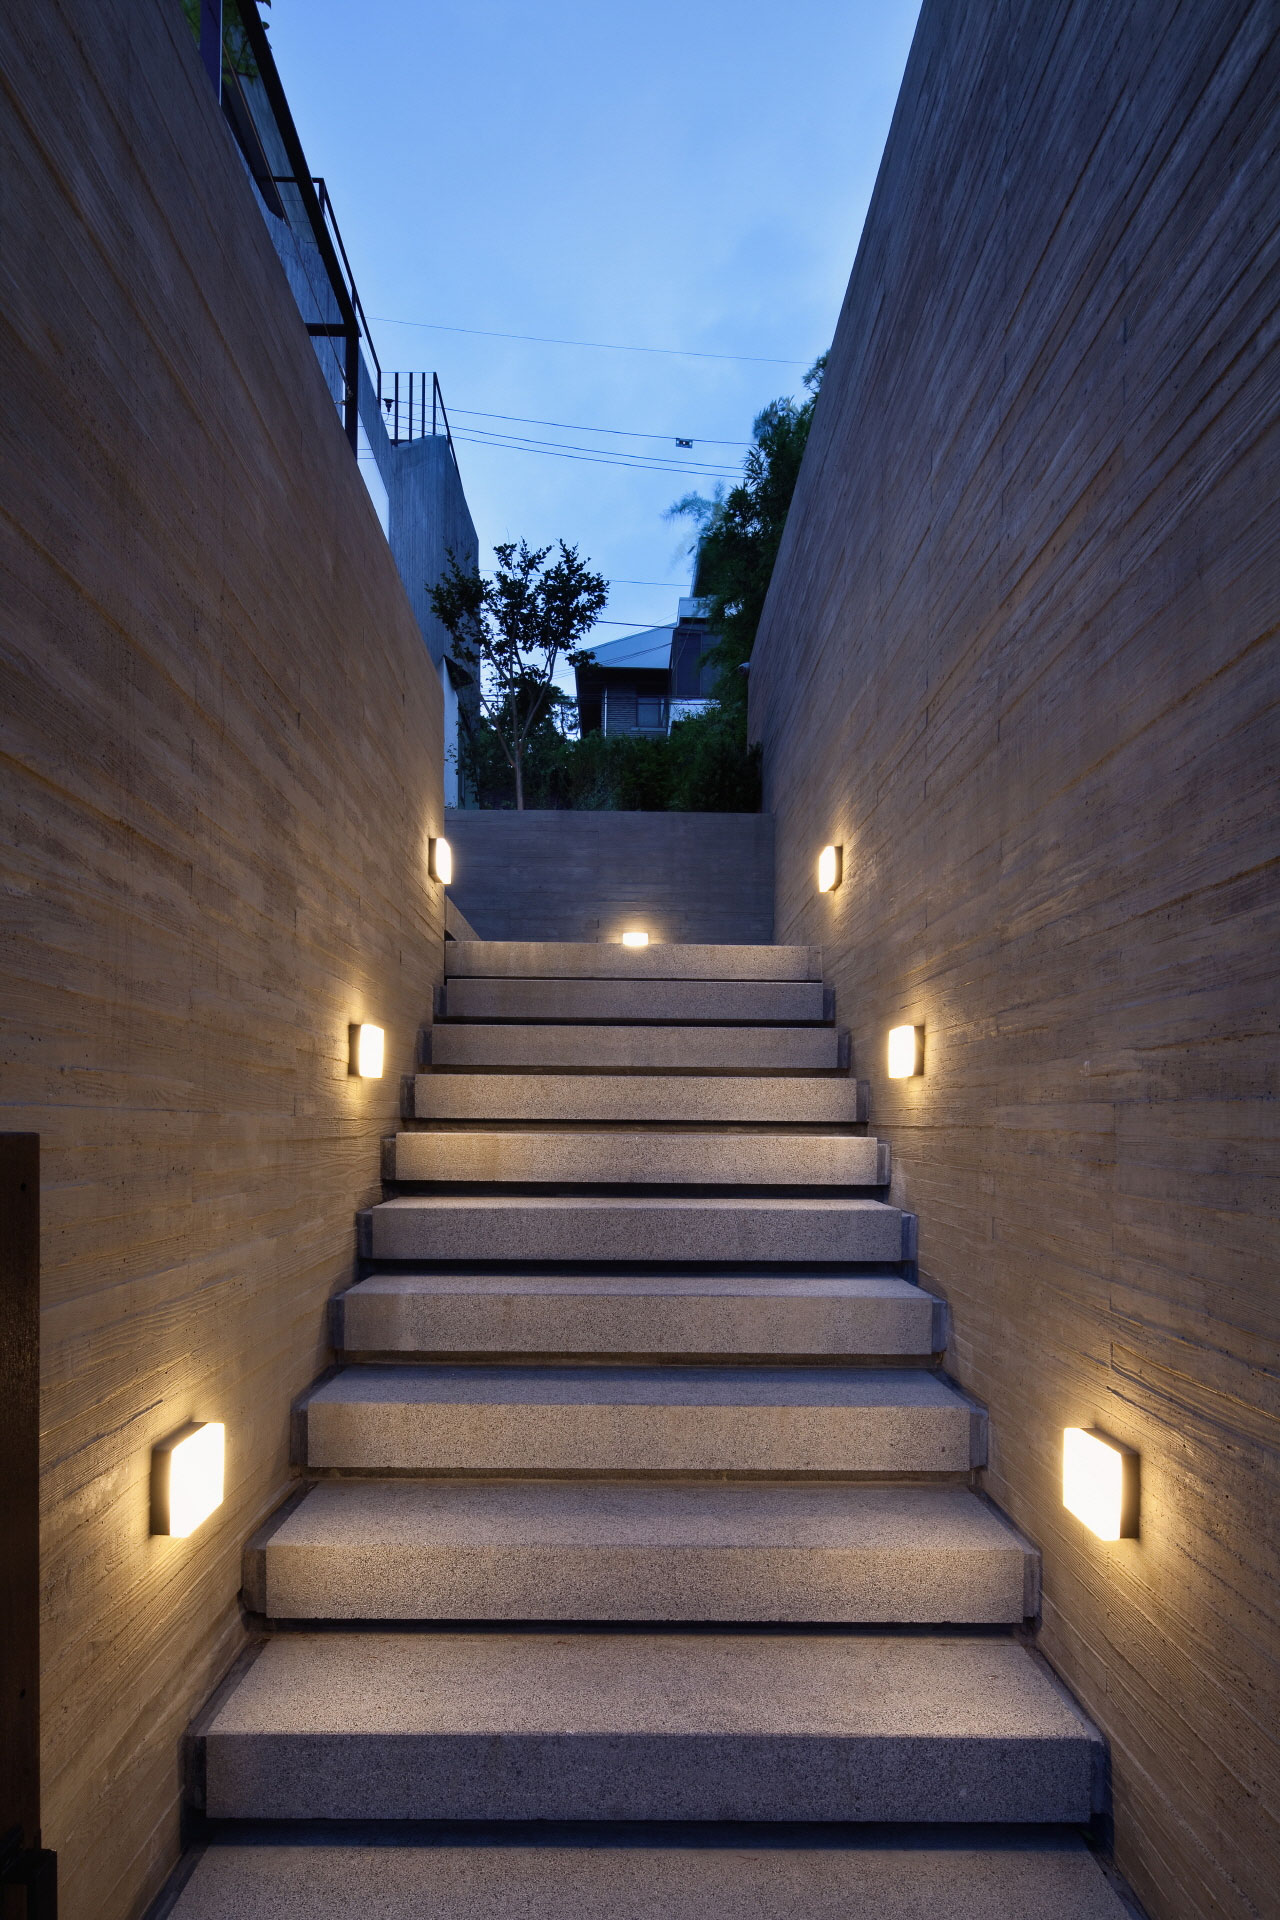 25 benefits pf stair lights outdoor warisan lighting - How to design outdoor lighting plan ...